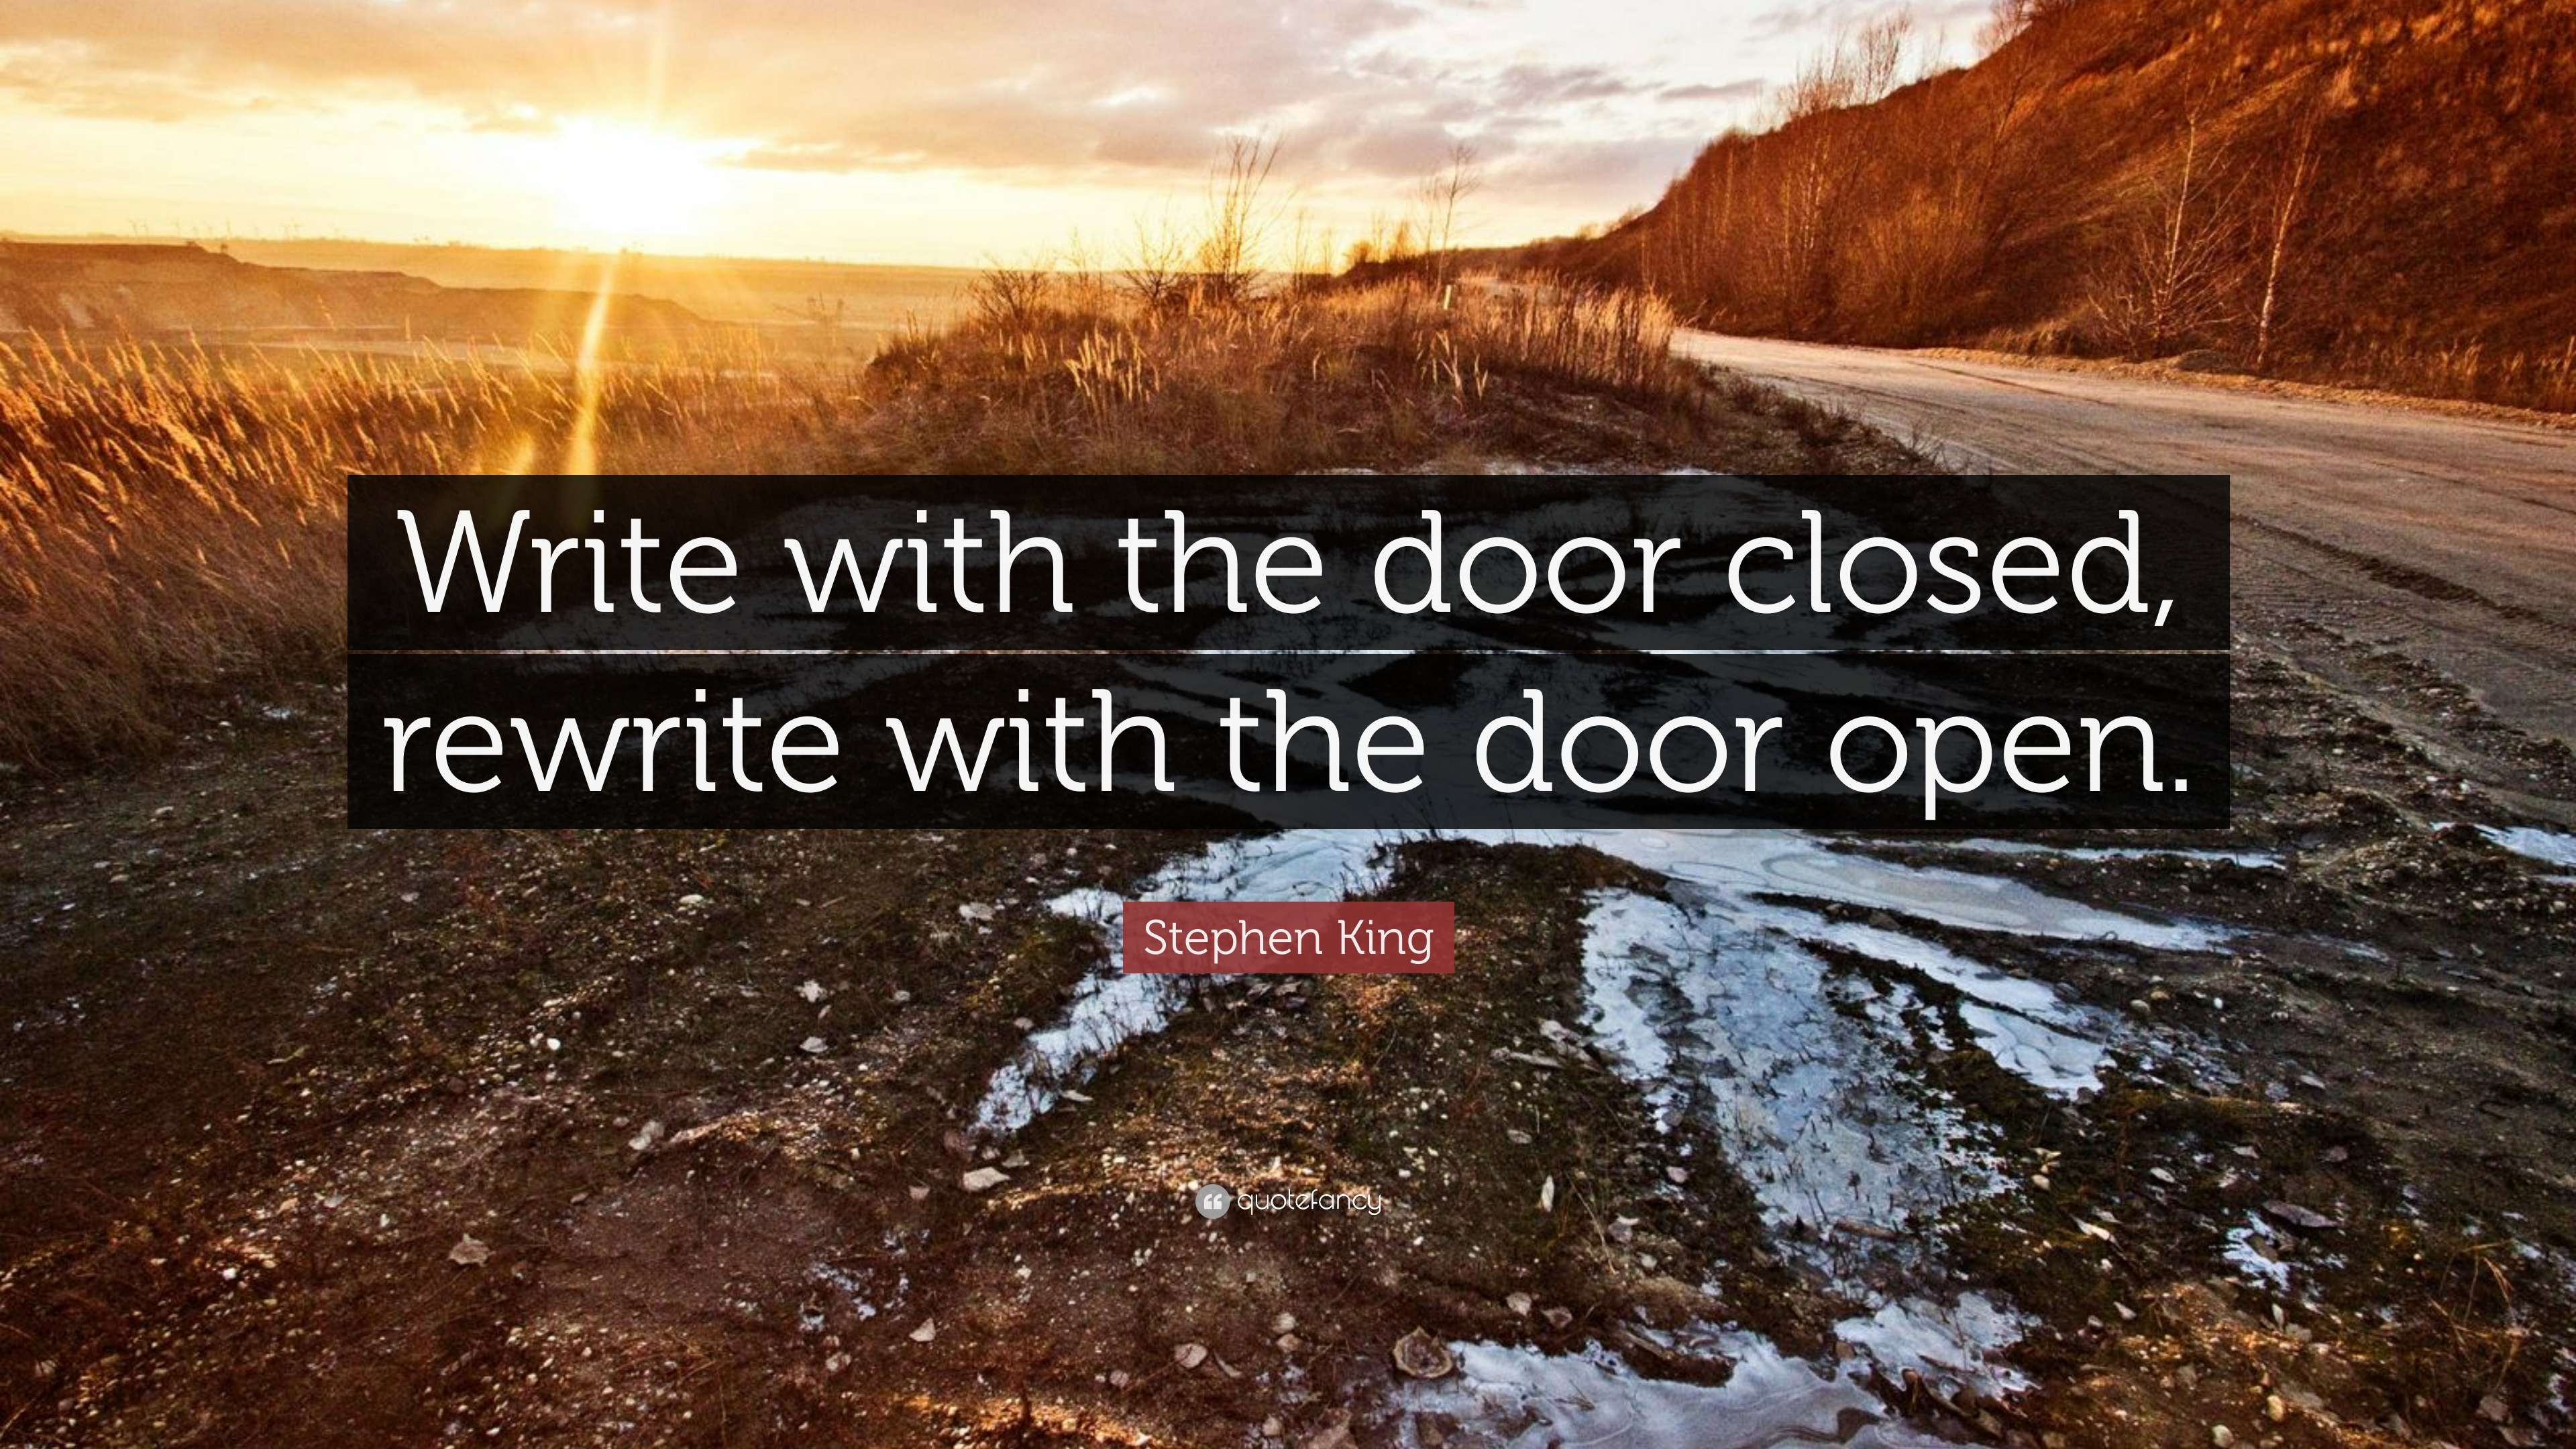 Stephen King Quote: U201cWrite With The Door Closed, Rewrite With The Door Open